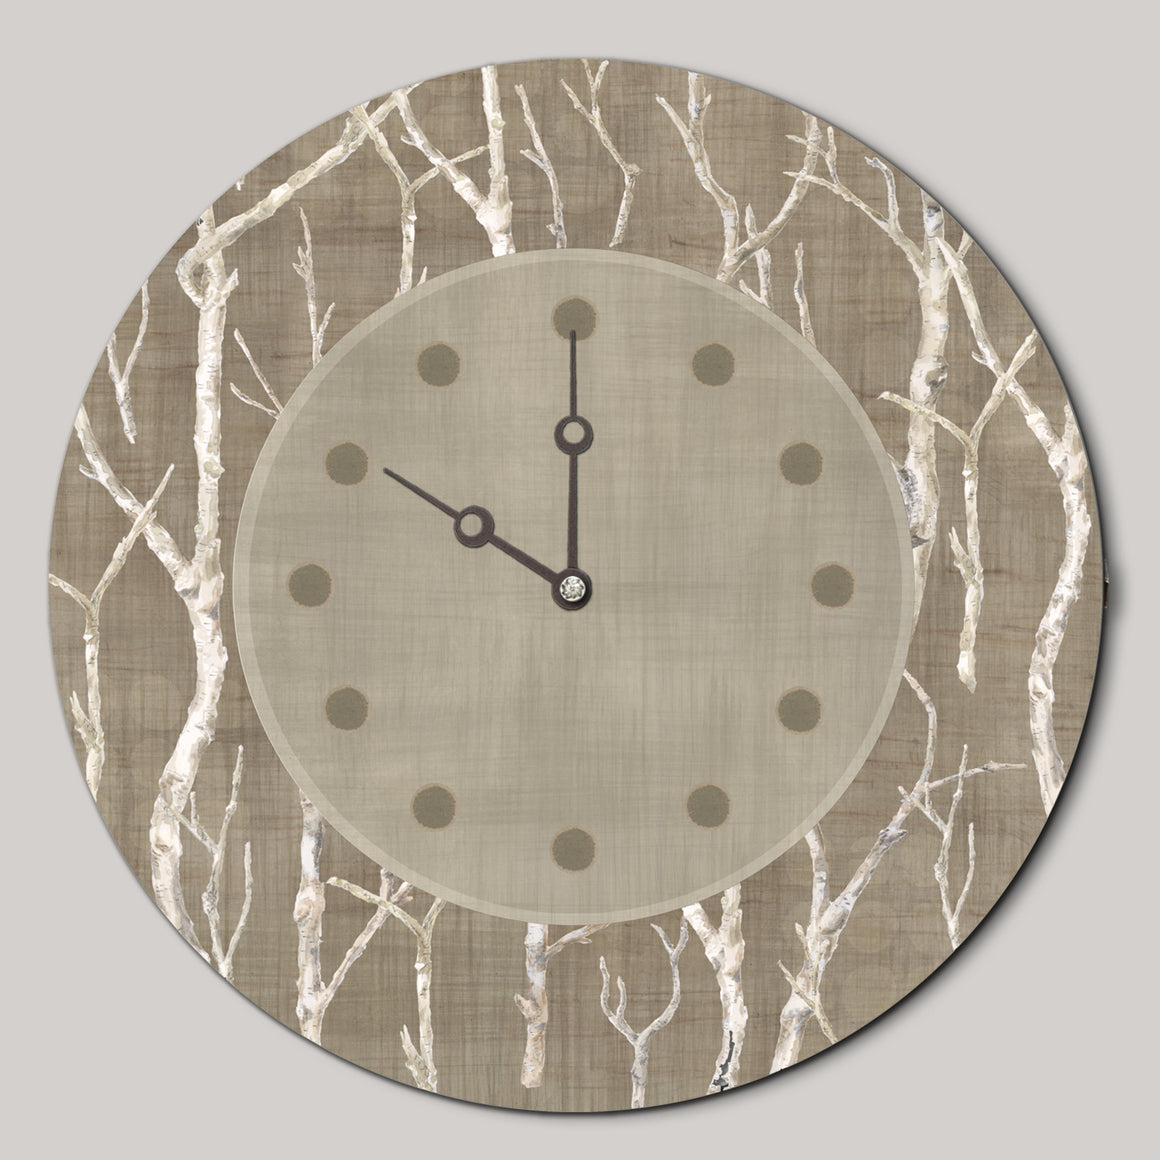 Round Wall Clock in Twigs